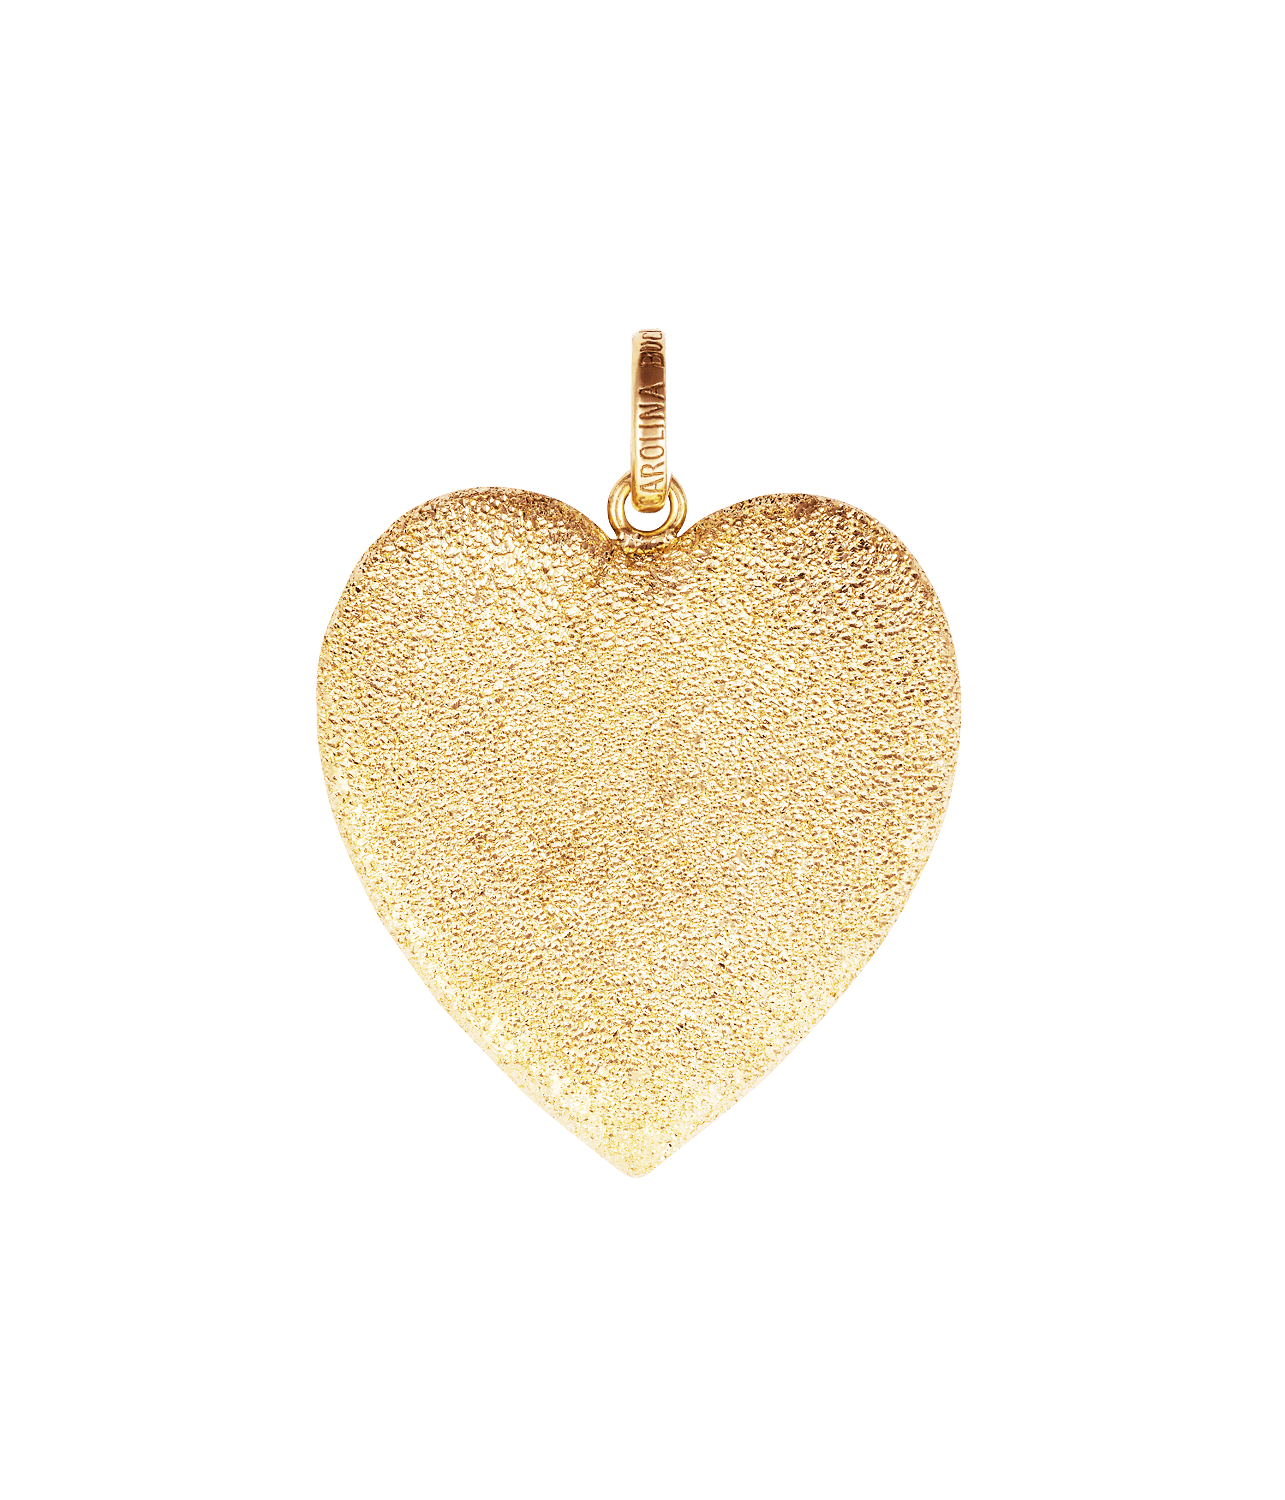 Carolina Bucci Florentine Finish Cuore Pendant Yellow Gold